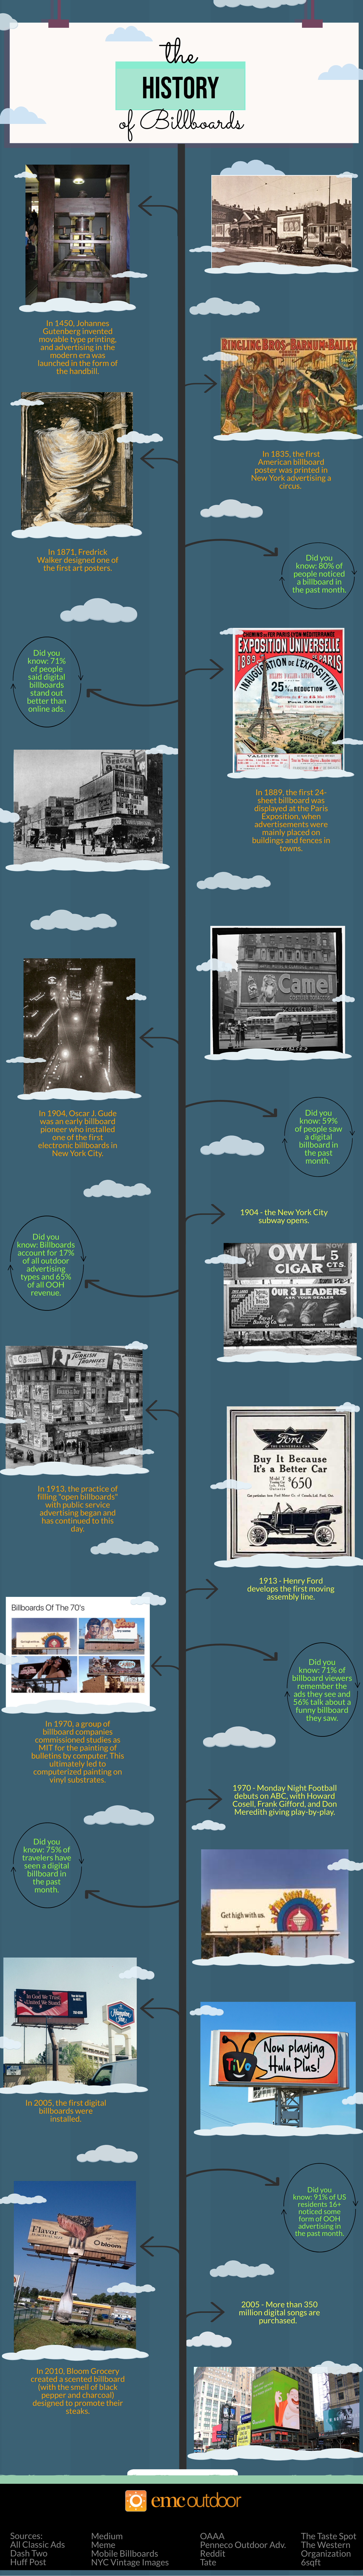 The-History-of-Billboards-Infographic